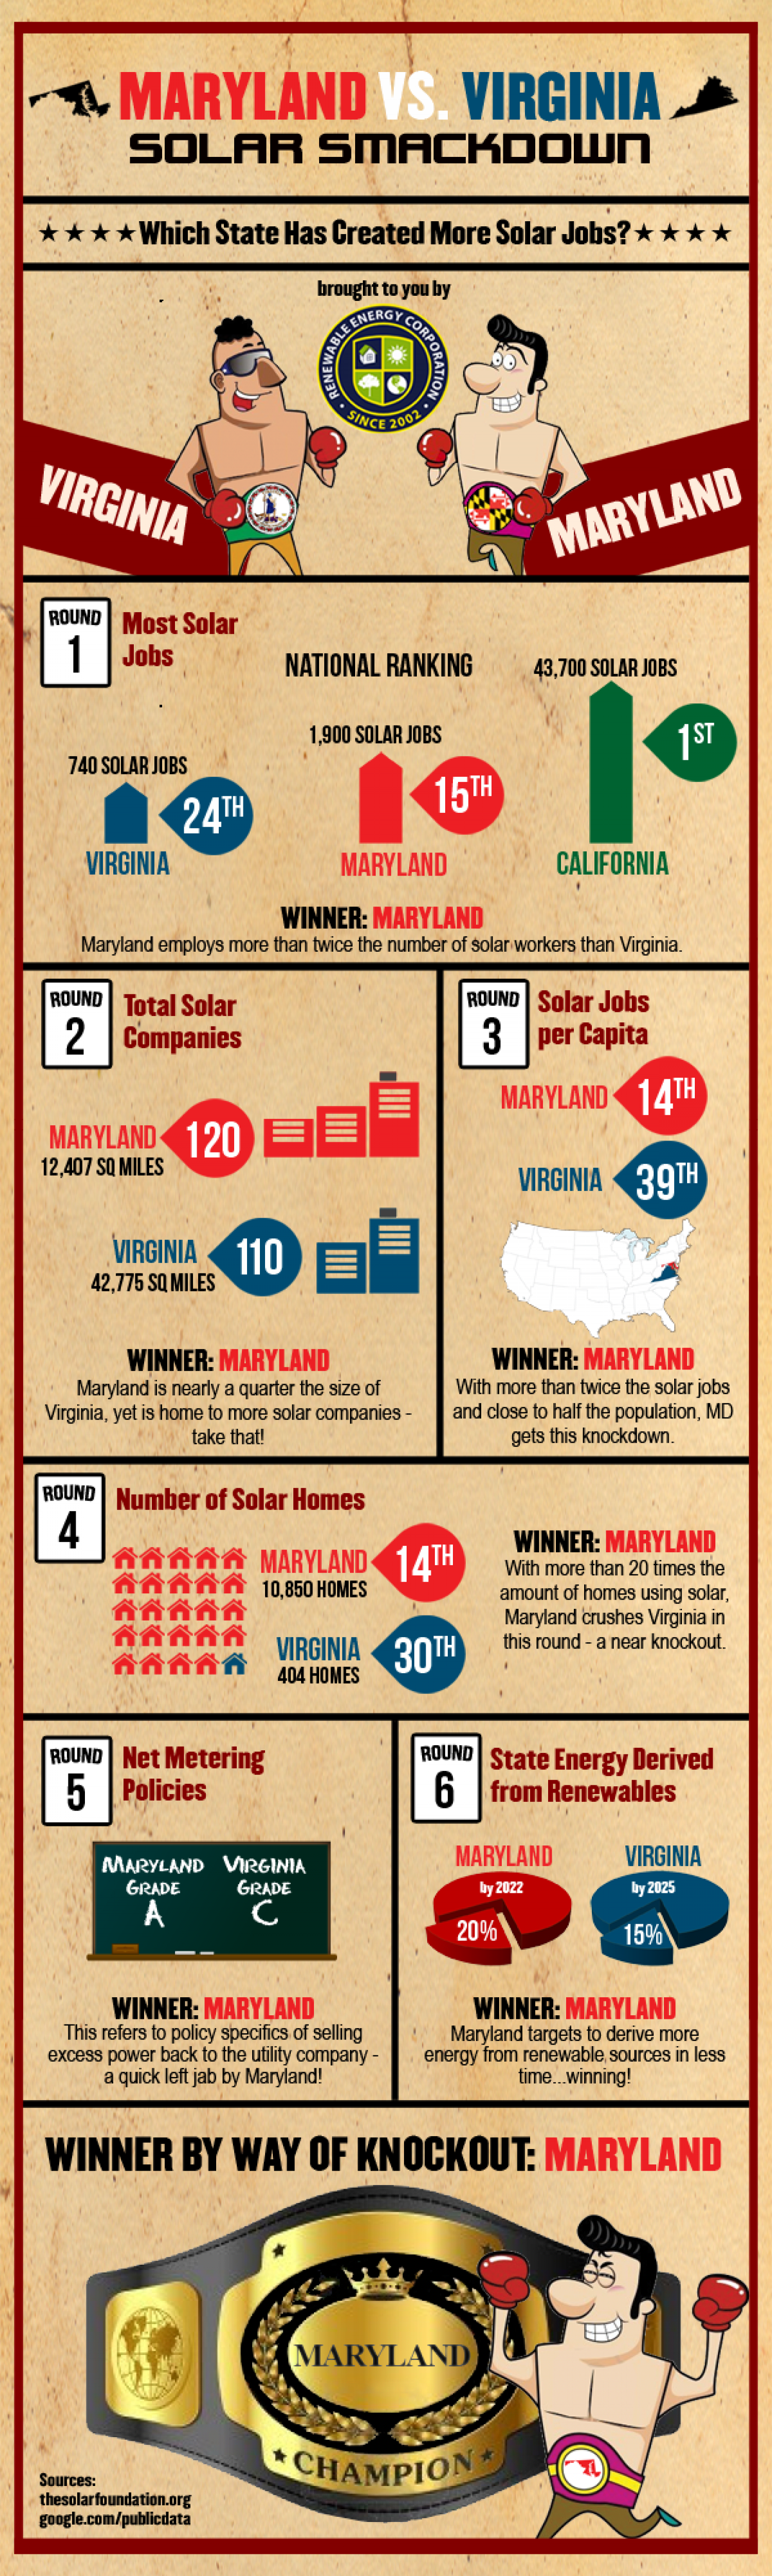 Solar Smackdown - Maryland vs. Virginia Infographic